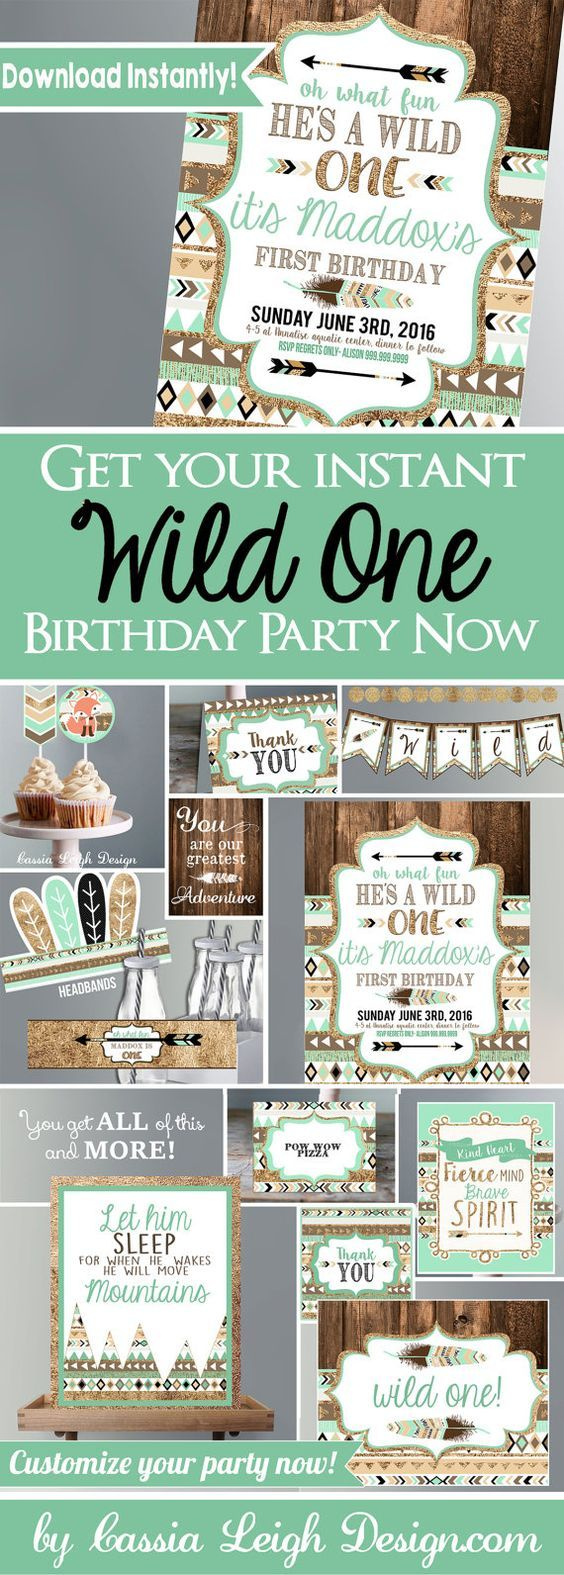 free printable funny0th birthday invitations%0A Tribal Birthday Printable Invitations  brown mint teal and gold  Tribal  Party Printable Digital Files   Baby boy birthday  Boy baby showers and  Boy